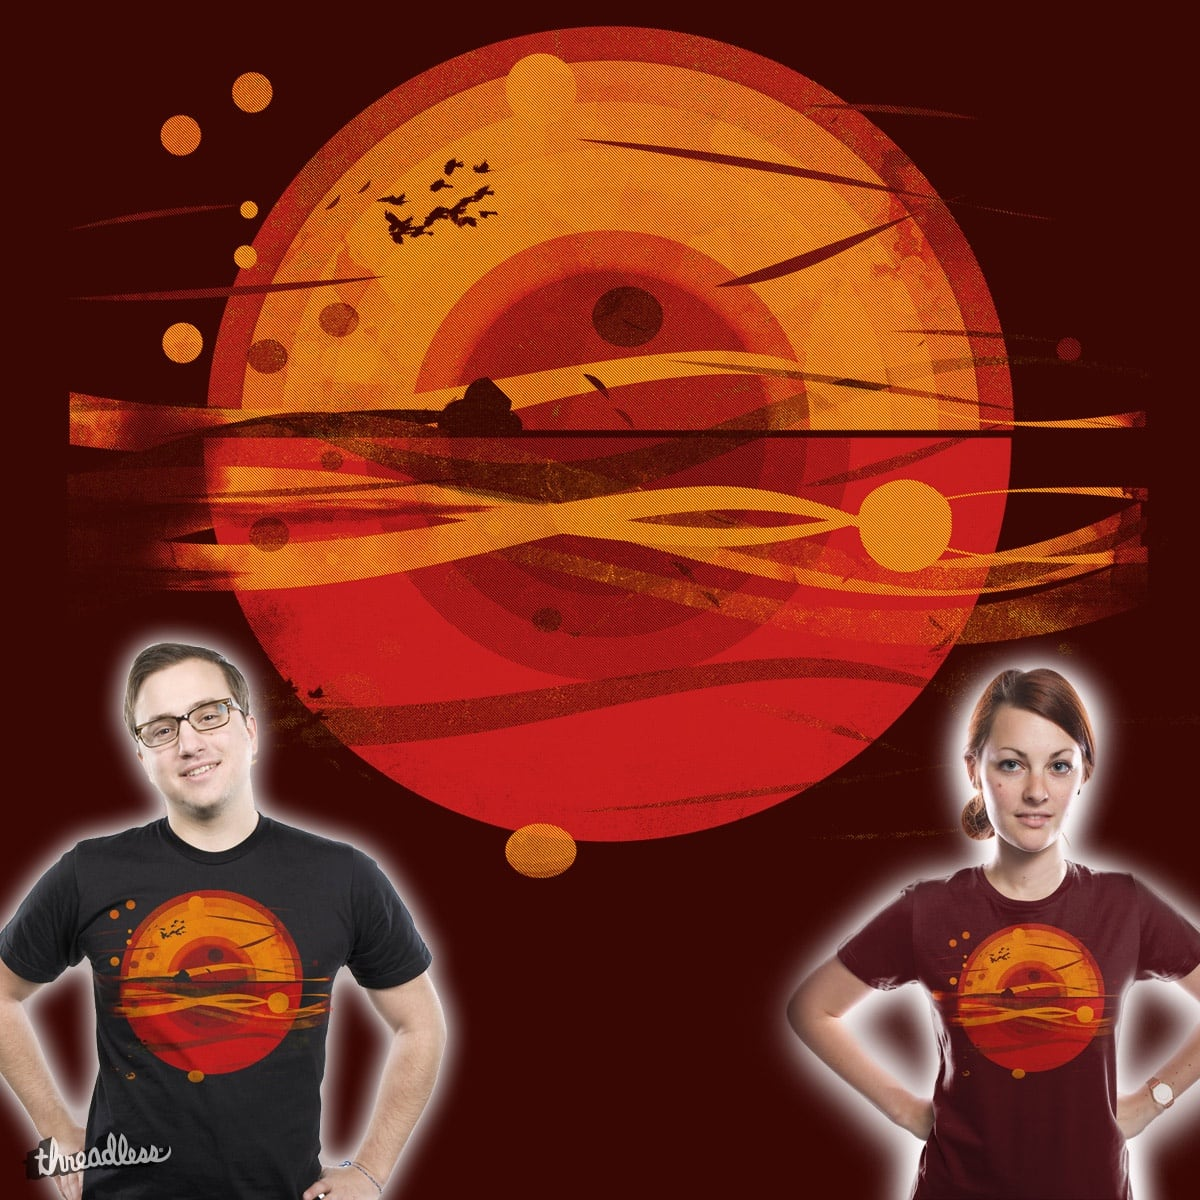 here comes the sun by kharmazero on Threadless